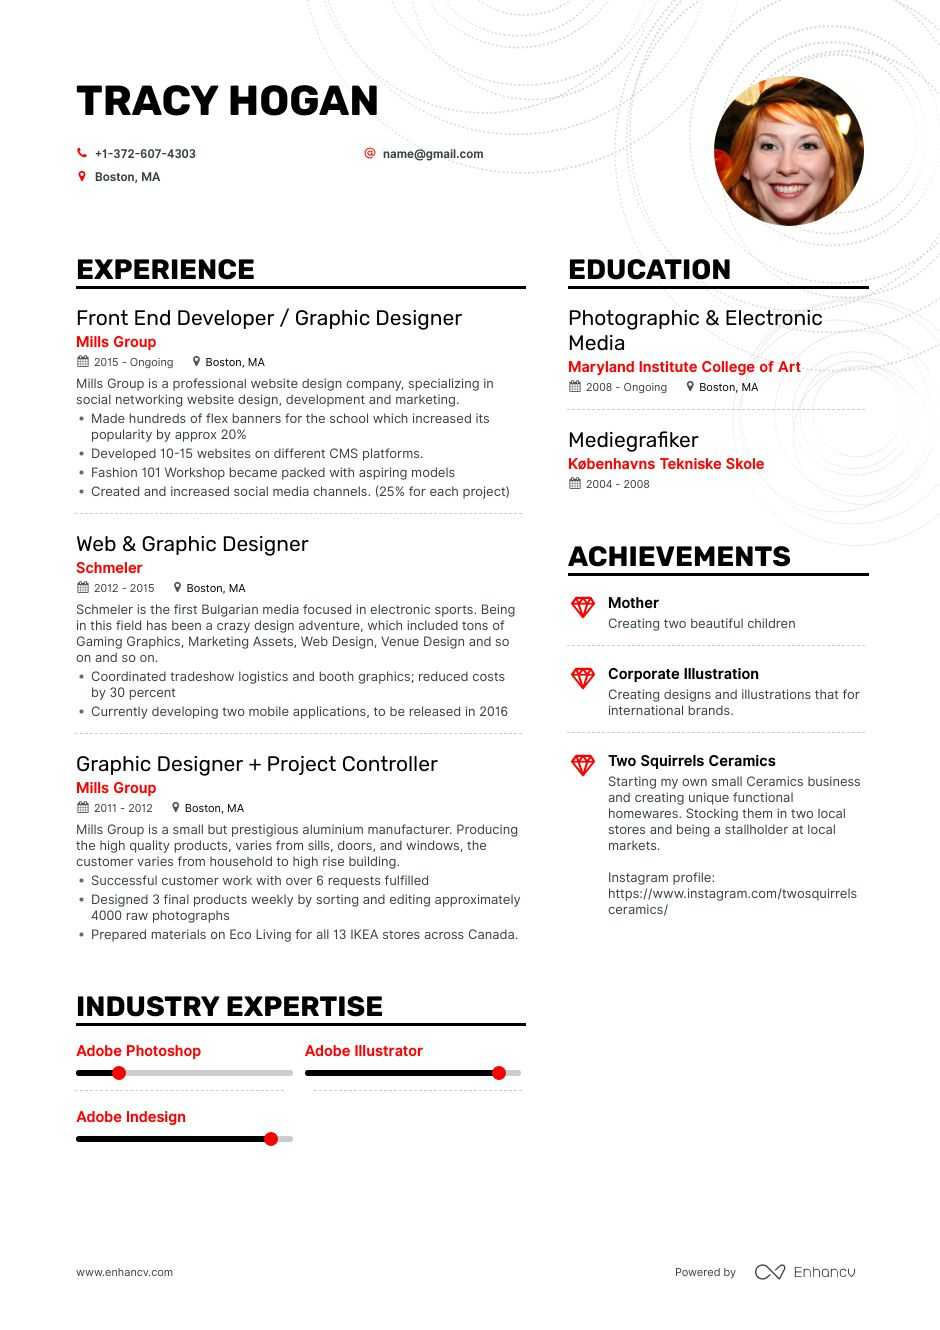 freelance graphic designer resume examples pro tips featured enhancv professional design Resume Professional Graphic Design Resume